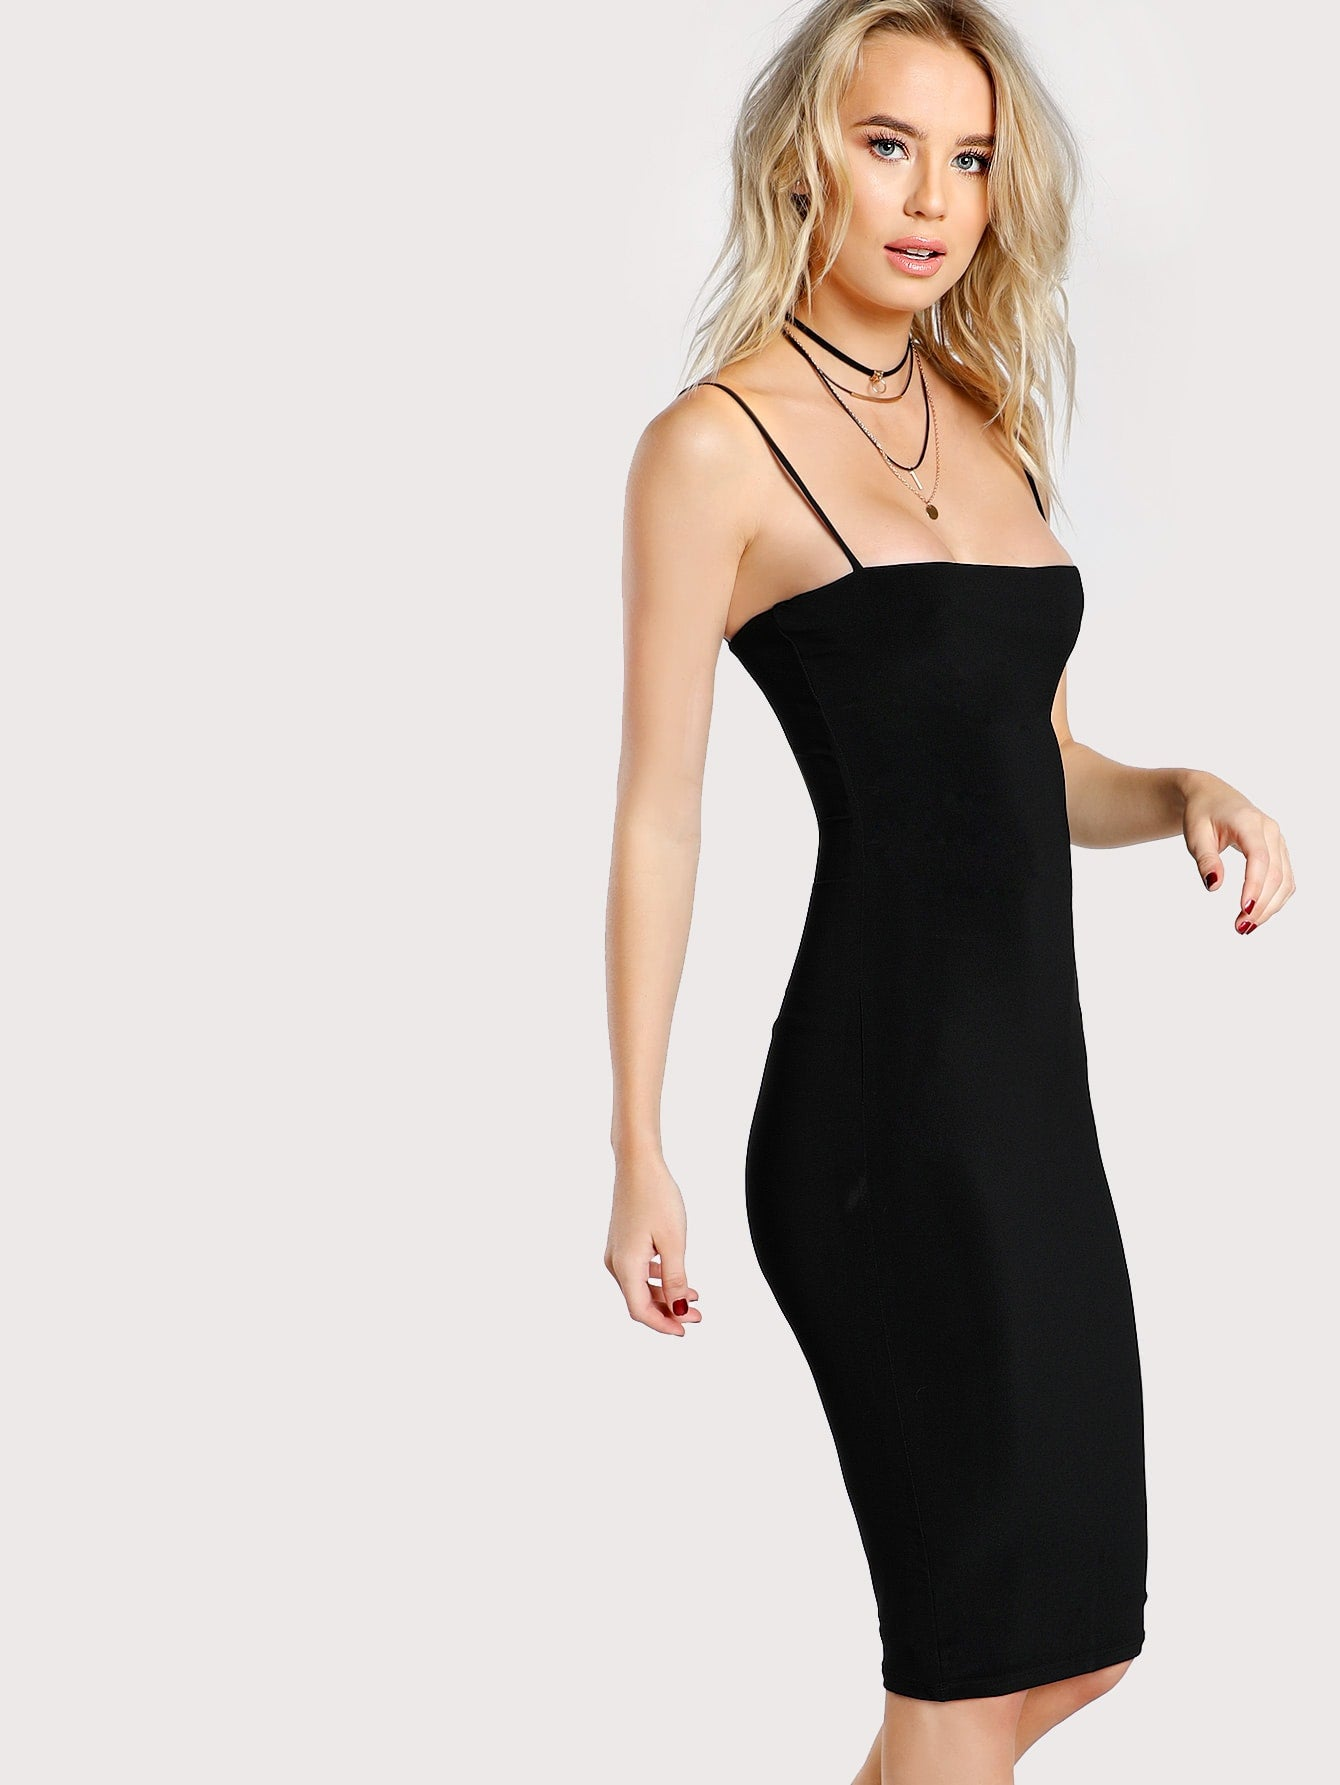 Black Cami Bodycon Midi Dress | Knee-Length Dress | SHEIN | Joan & Vern's Apparel